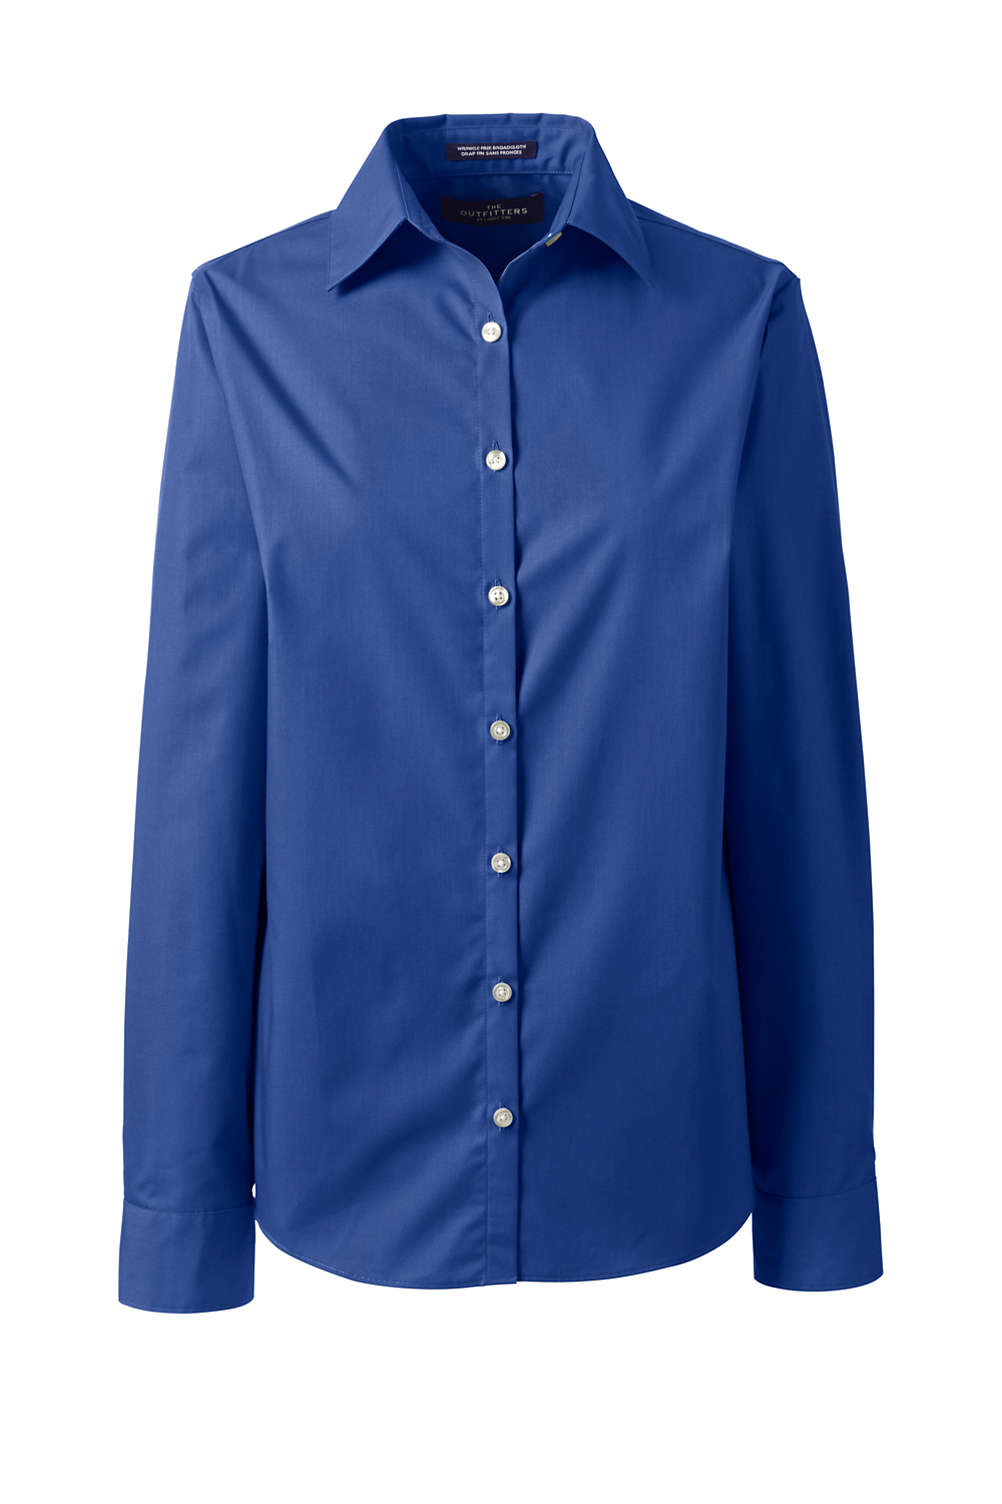 c9d3a410 Women's Broadcloth Shirt from Lands' End